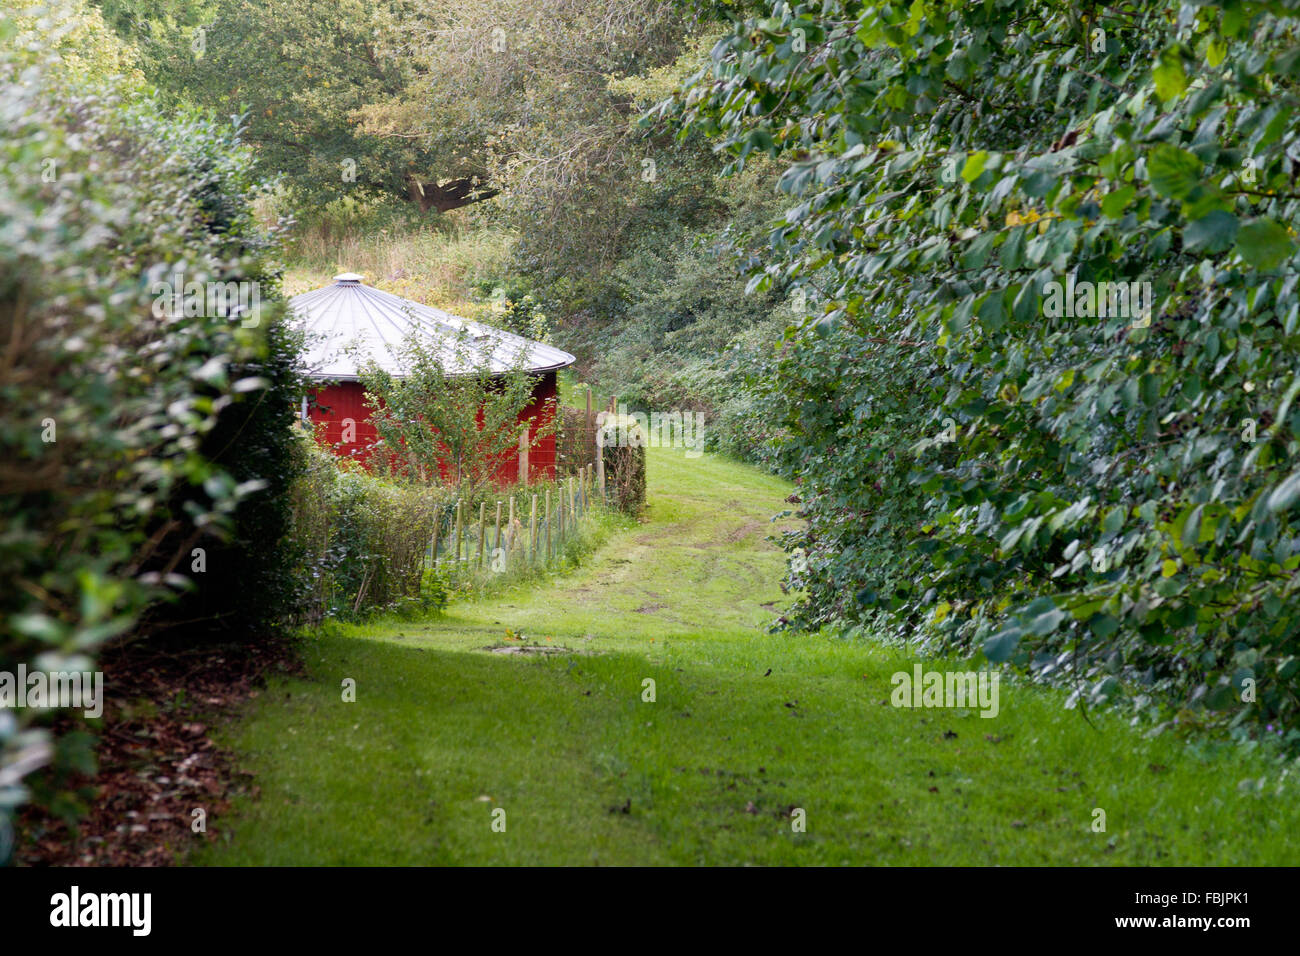 Round building with red walls alongside a country path through lush countryside in Grasten, Denmark. - Stock Image